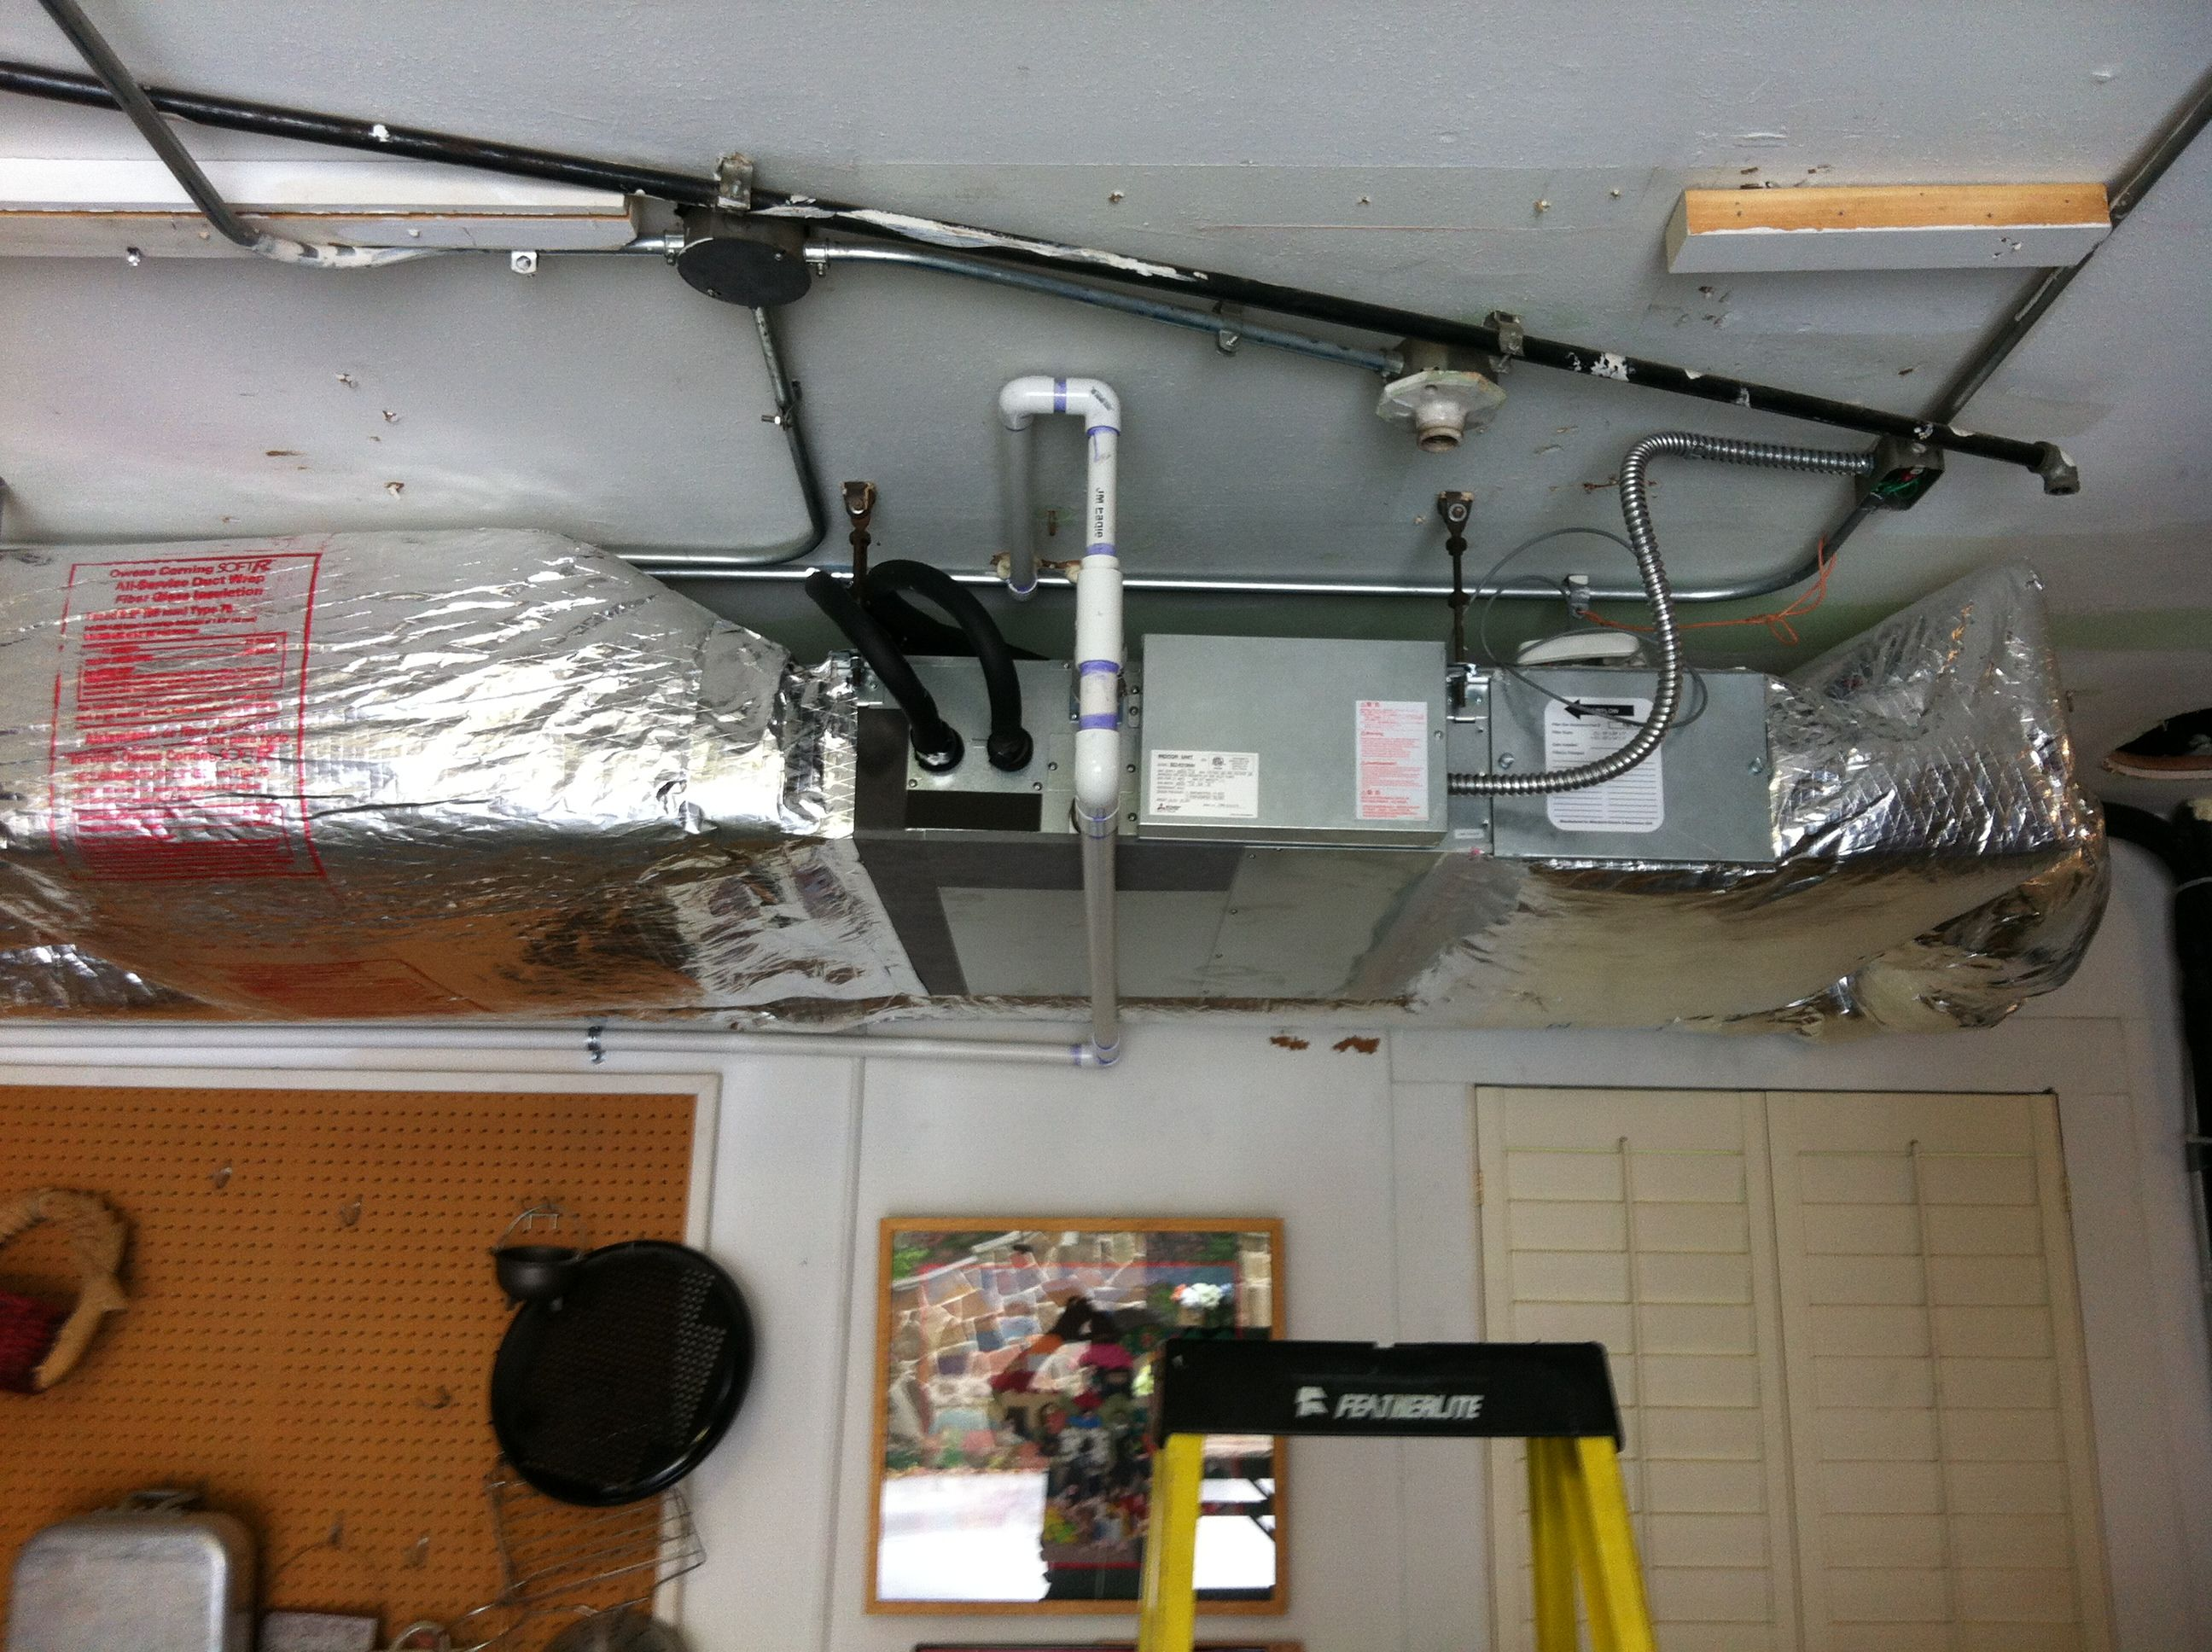 Mitsubishi Ducted Unit For Kitchen Heating And Air Conditioning